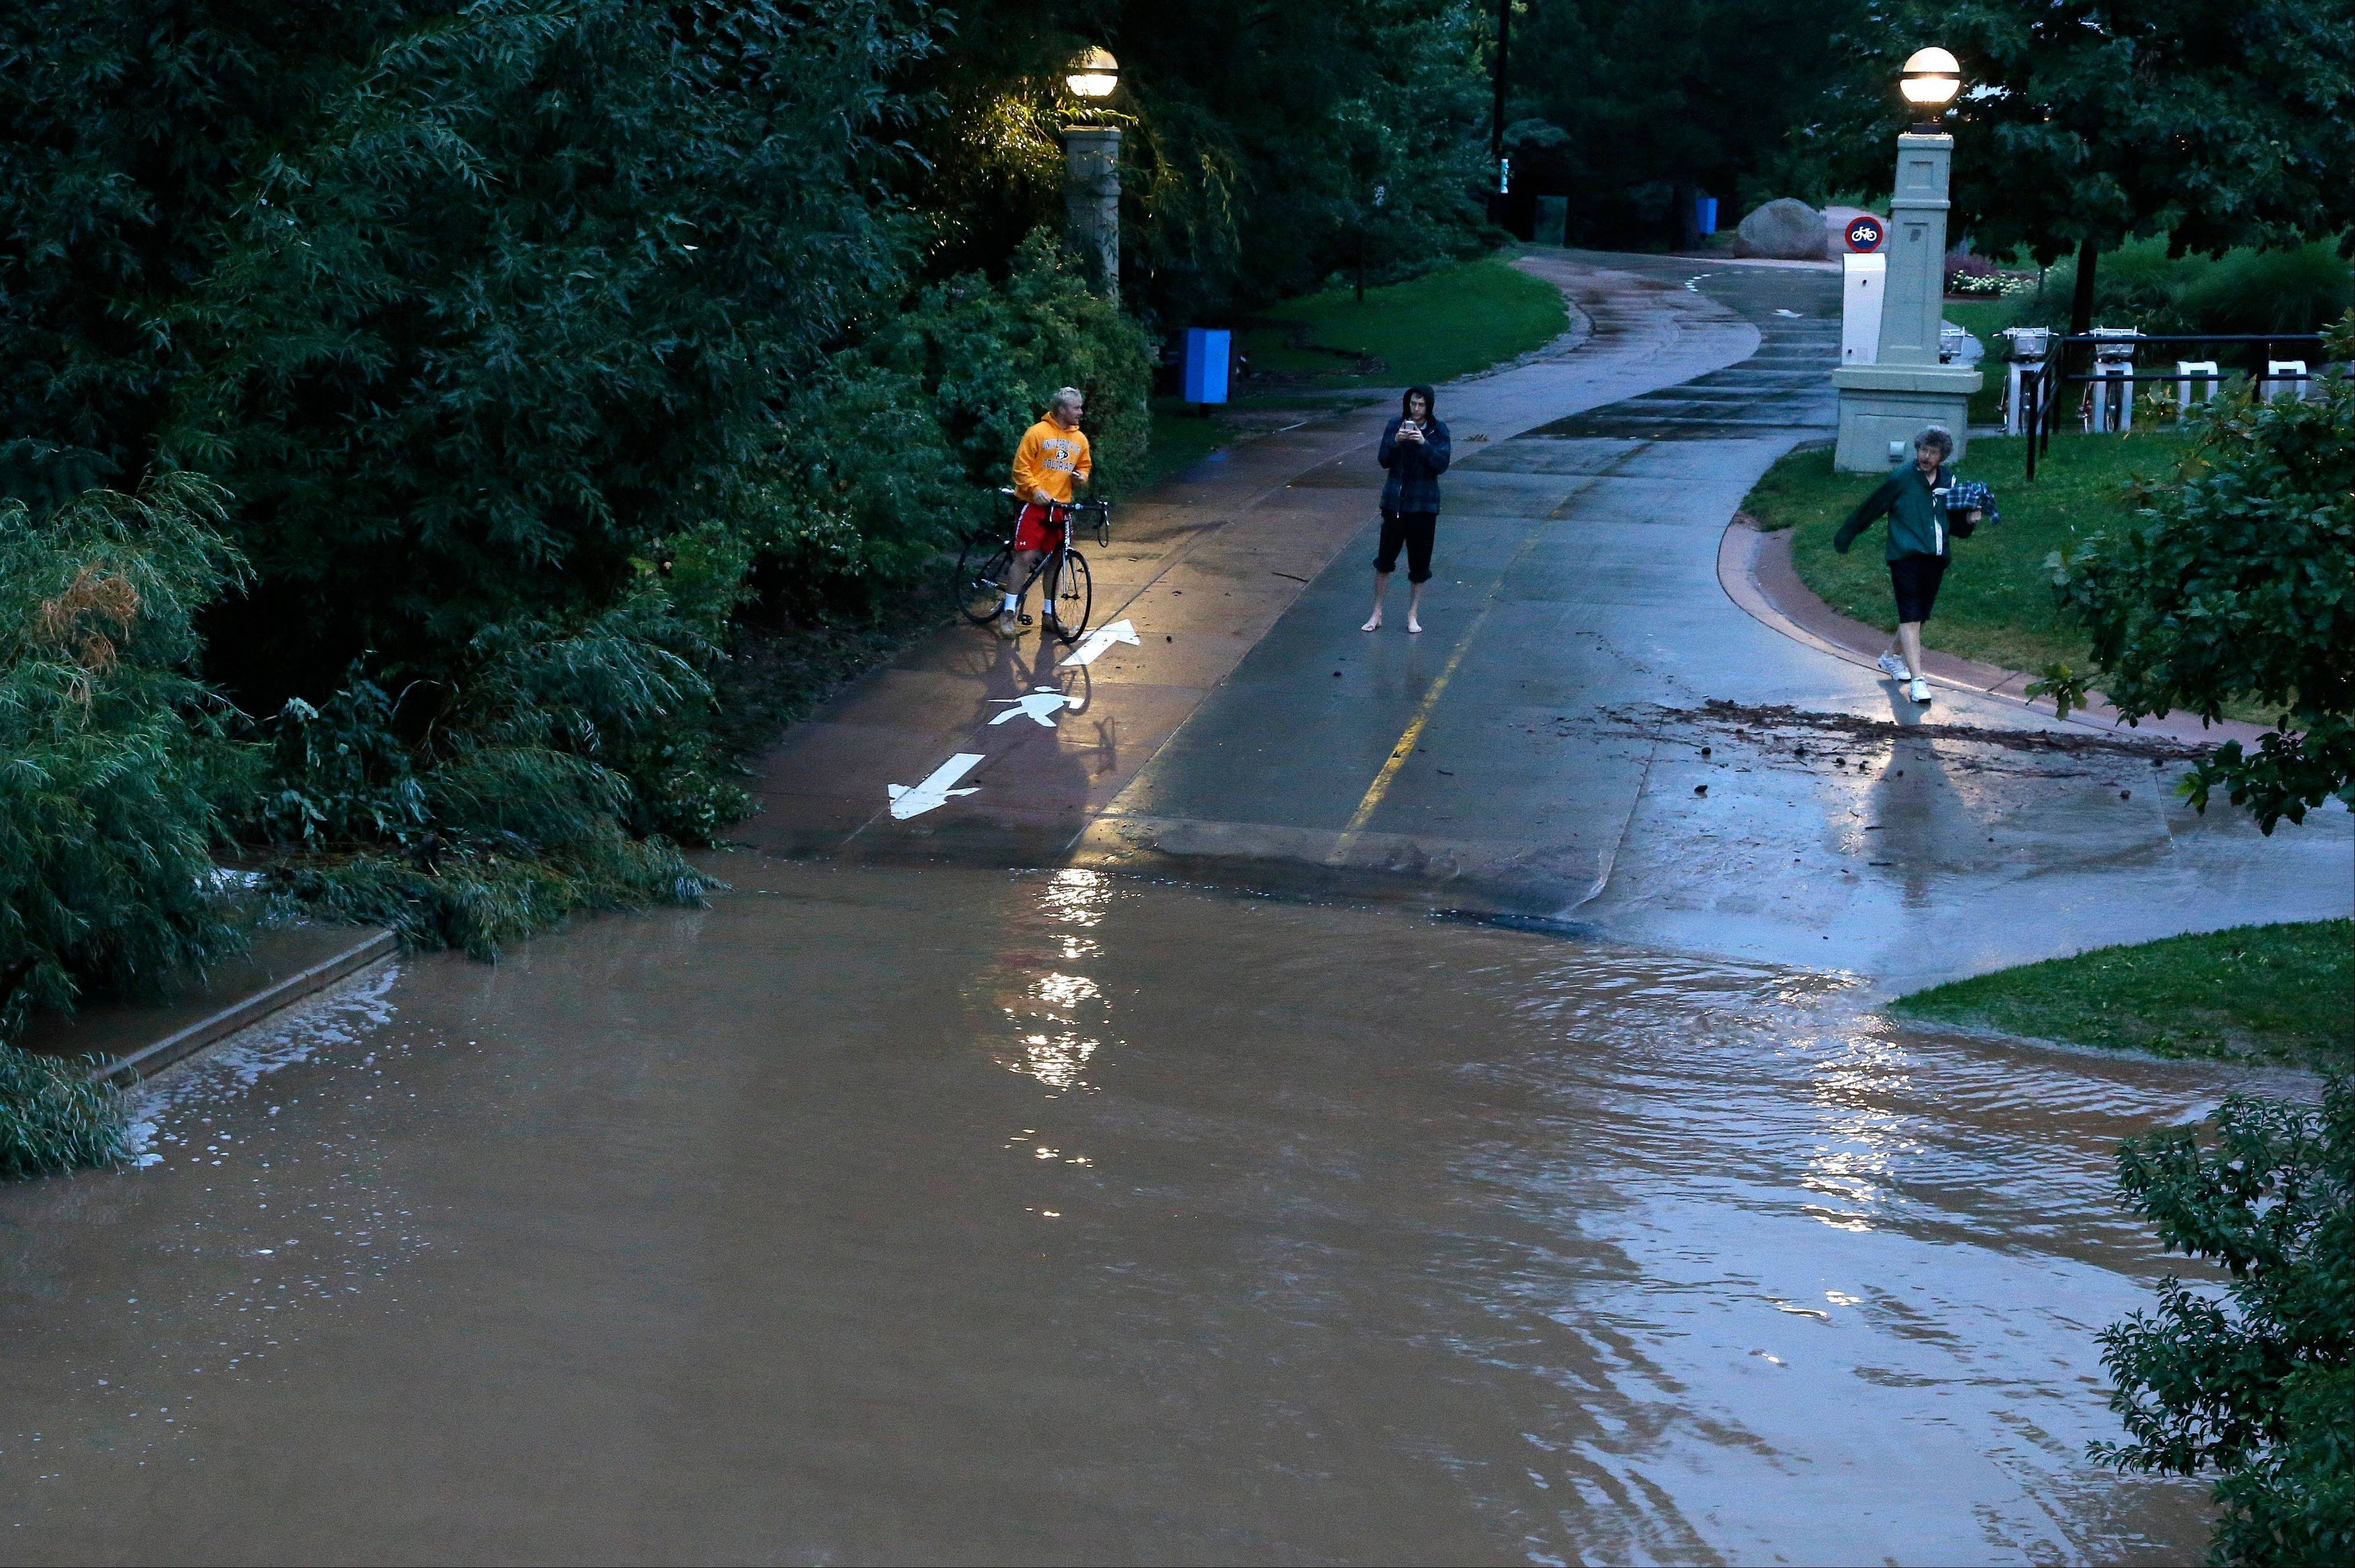 Local residents view dangerously high Boulder Creek following overnight flash flooding in downtown Boulder, Colo., Thursday, Sept 12, 2013. Flash flooding in Colorado has left two people dead and the widespread high waters are keeping search and rescue teams from reaching stranded residents and motorists in Boulder and nearby mountain communities as heavy rains hammered northern Colorado.